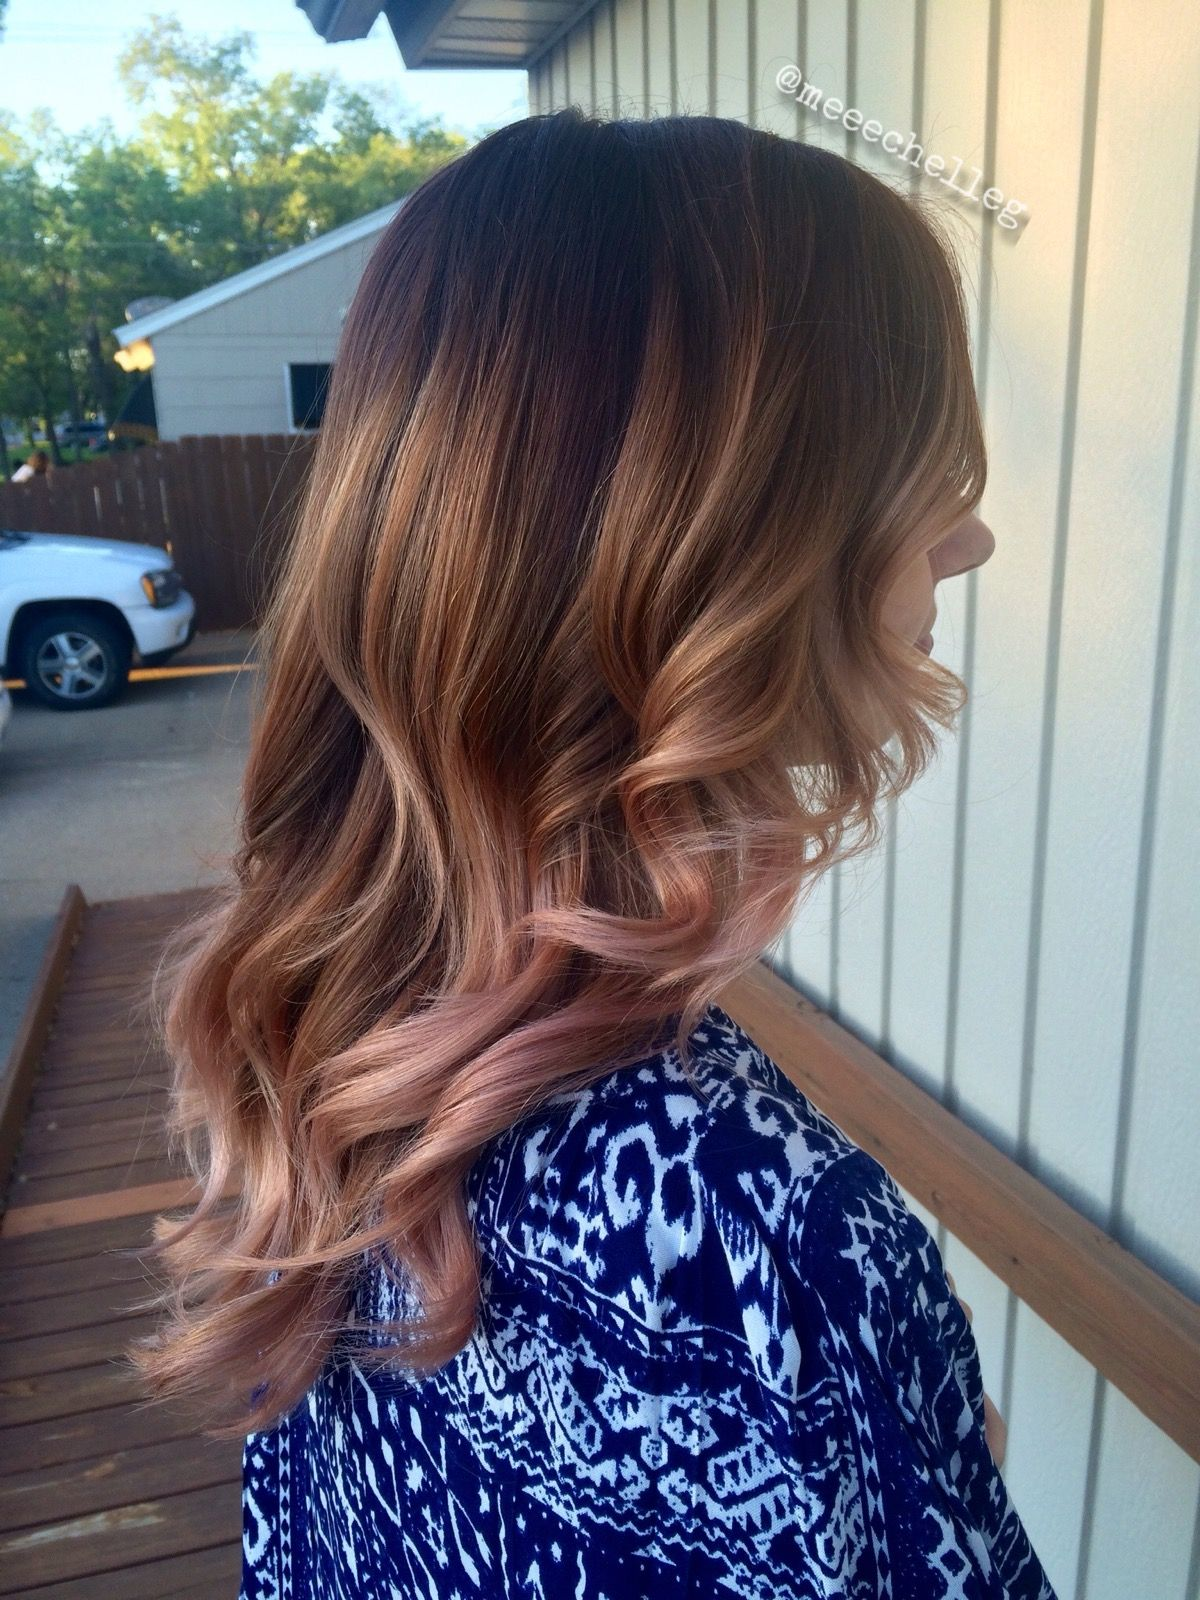 Long Hair Balayage Rose Gold Honey Caramel Romantic Curls Loose Curls Shadow Root Blonde Brunette Long Hair Styles Romantic Curls Brunette Hair Color